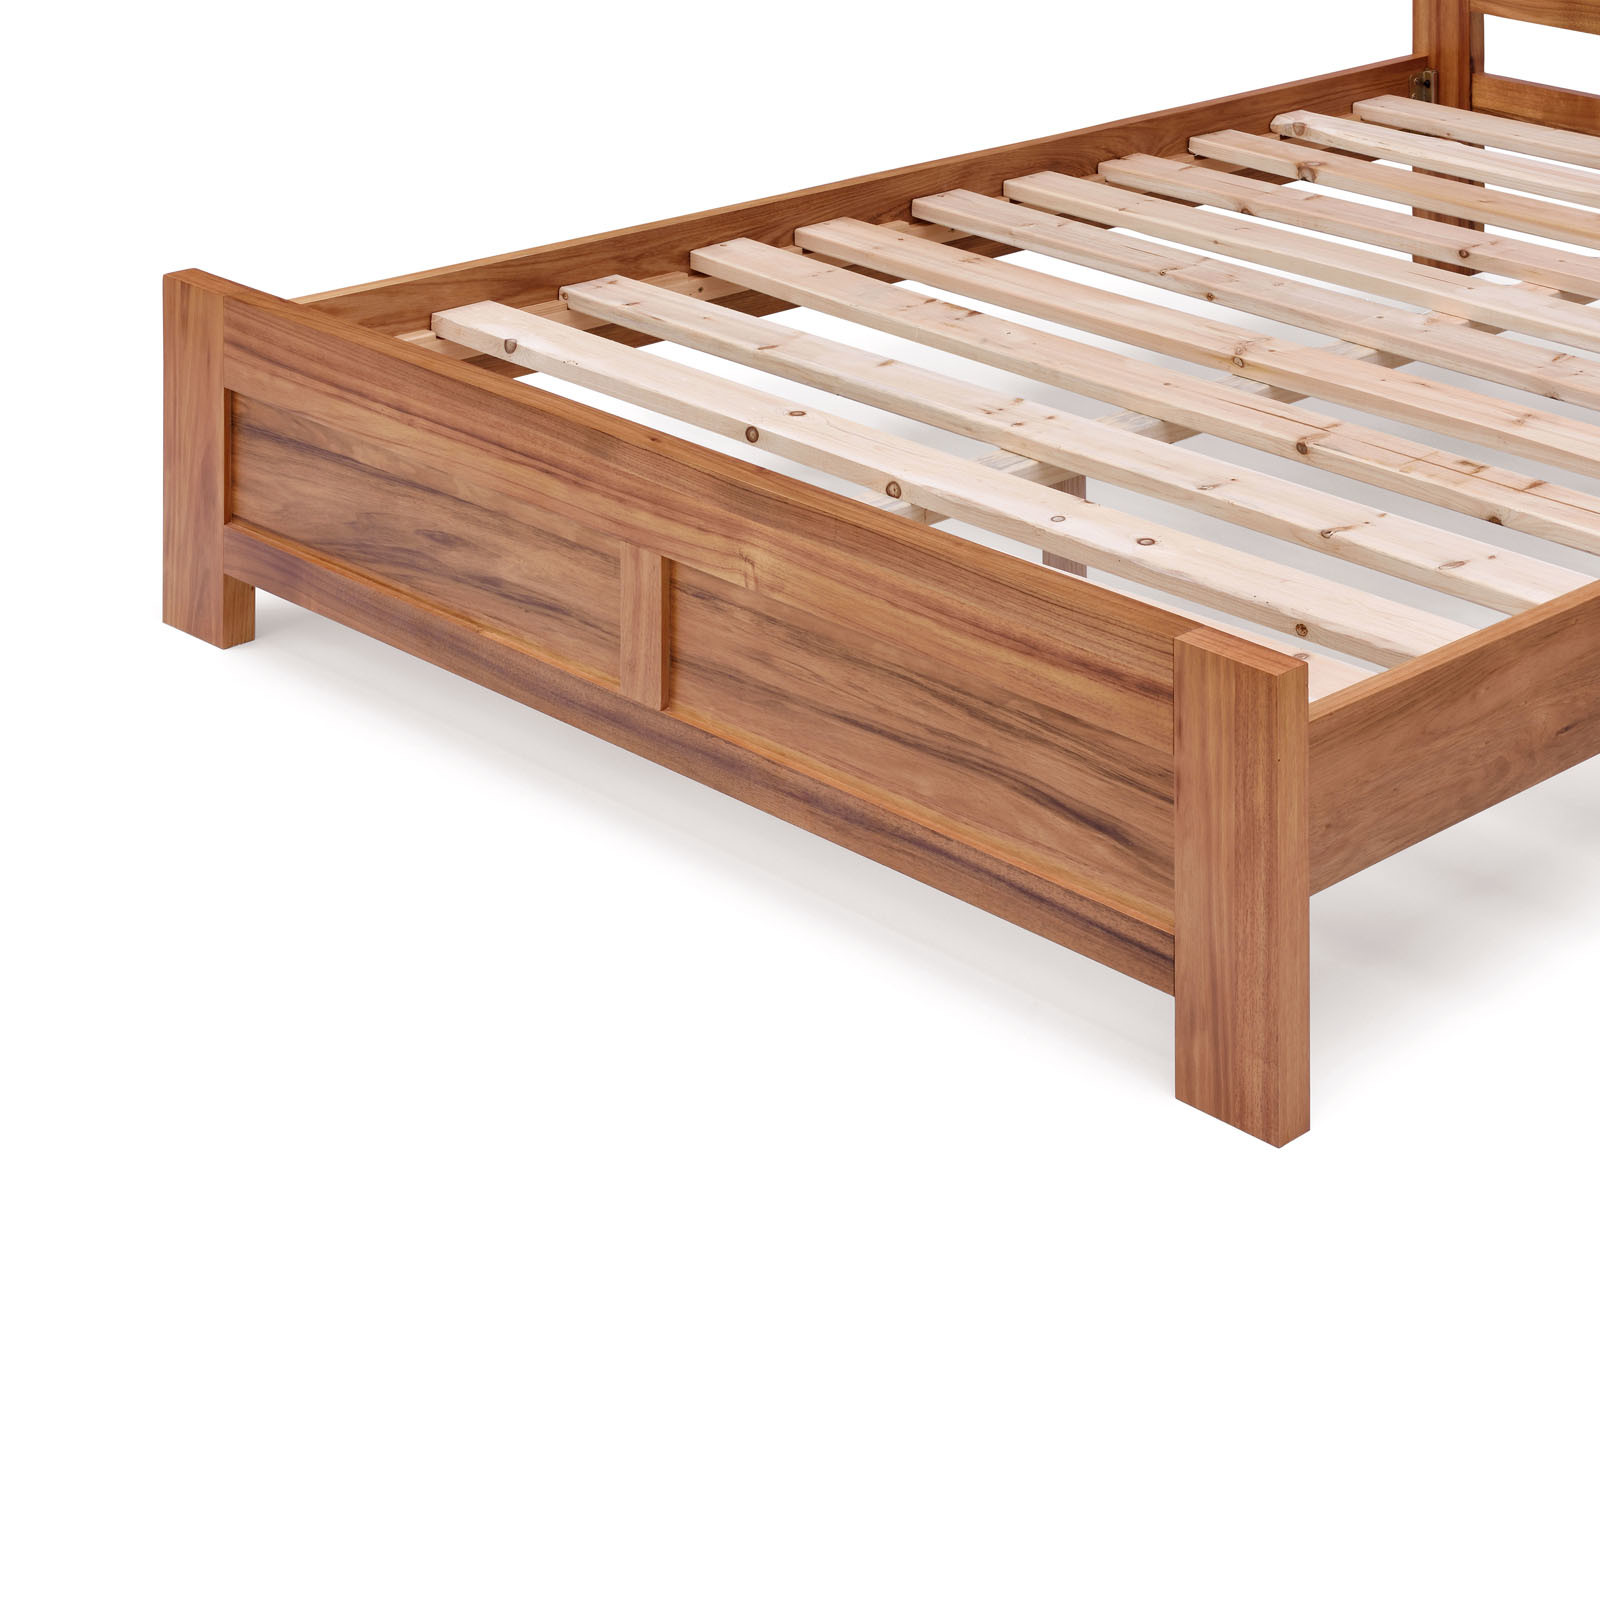 New seattle bed frame ebay for New bed frame